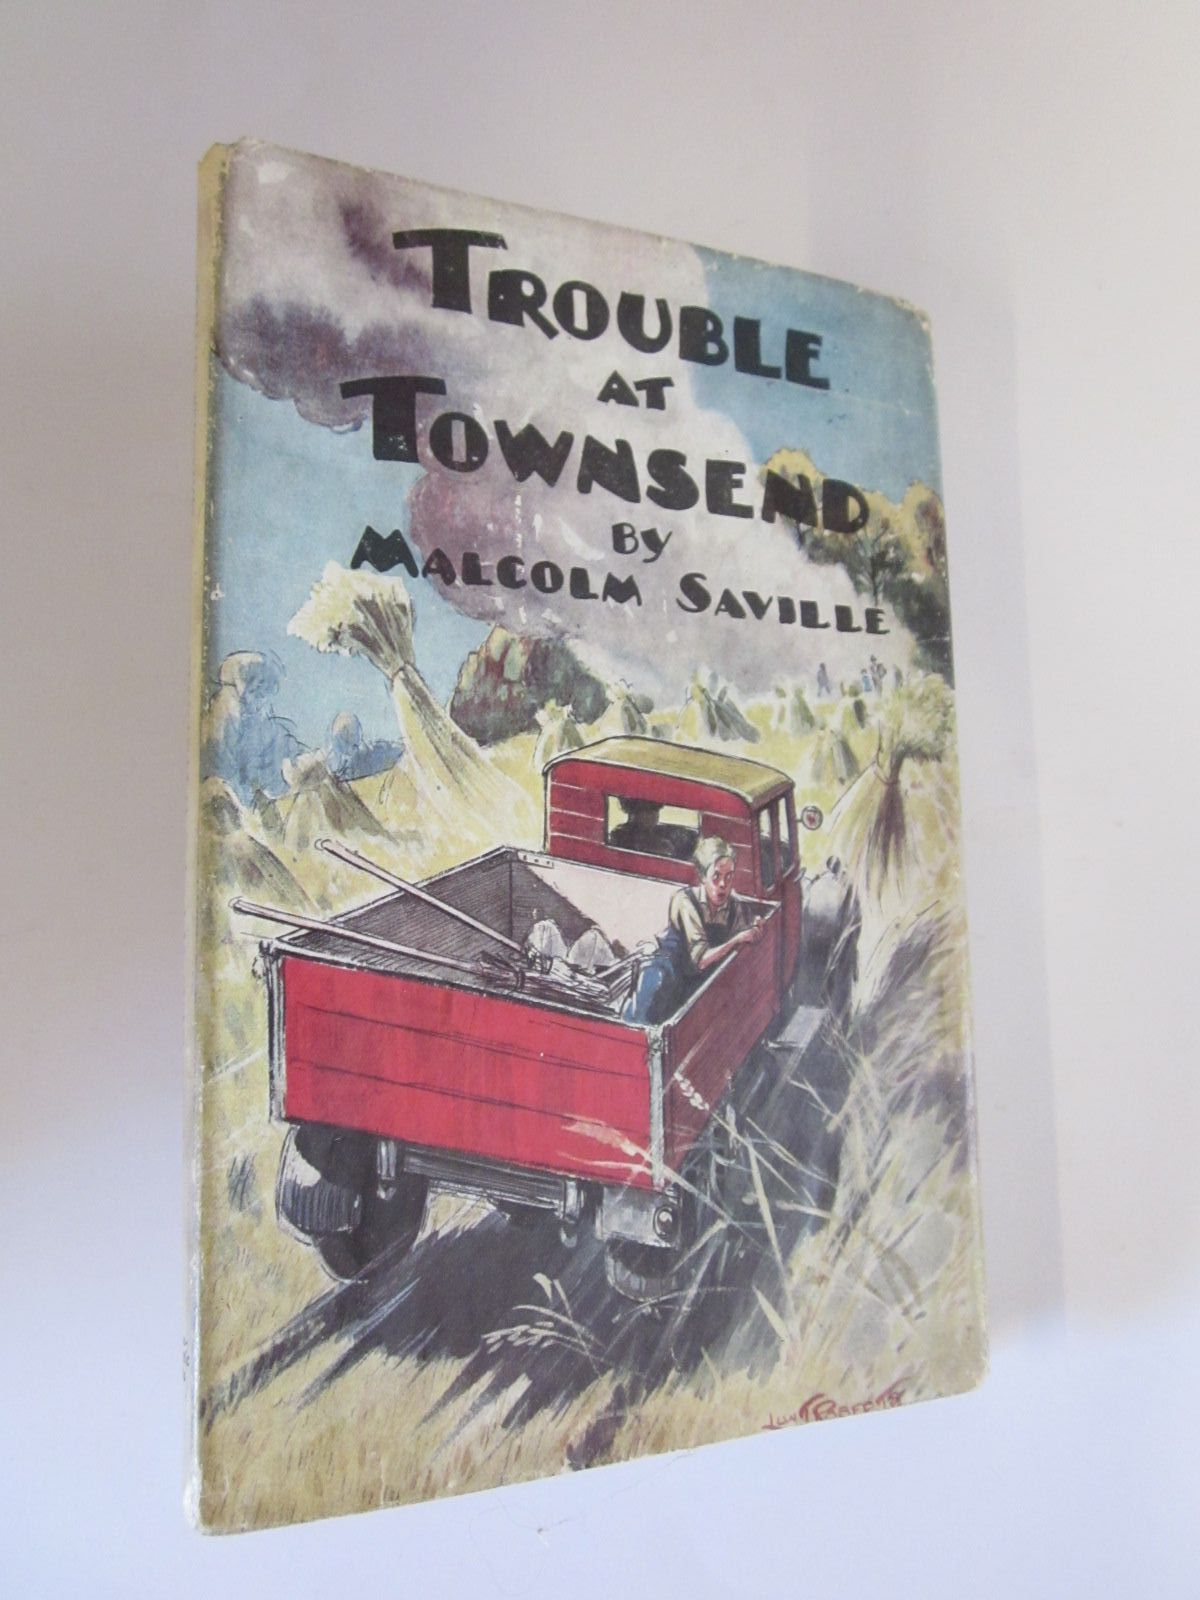 Photo of TROUBLE AT TOWNSEND written by Saville, Malcolm illustrated by Roberts, Lunt published by Transatlantic Arts Ltd. (STOCK CODE: 1206716)  for sale by Stella & Rose's Books